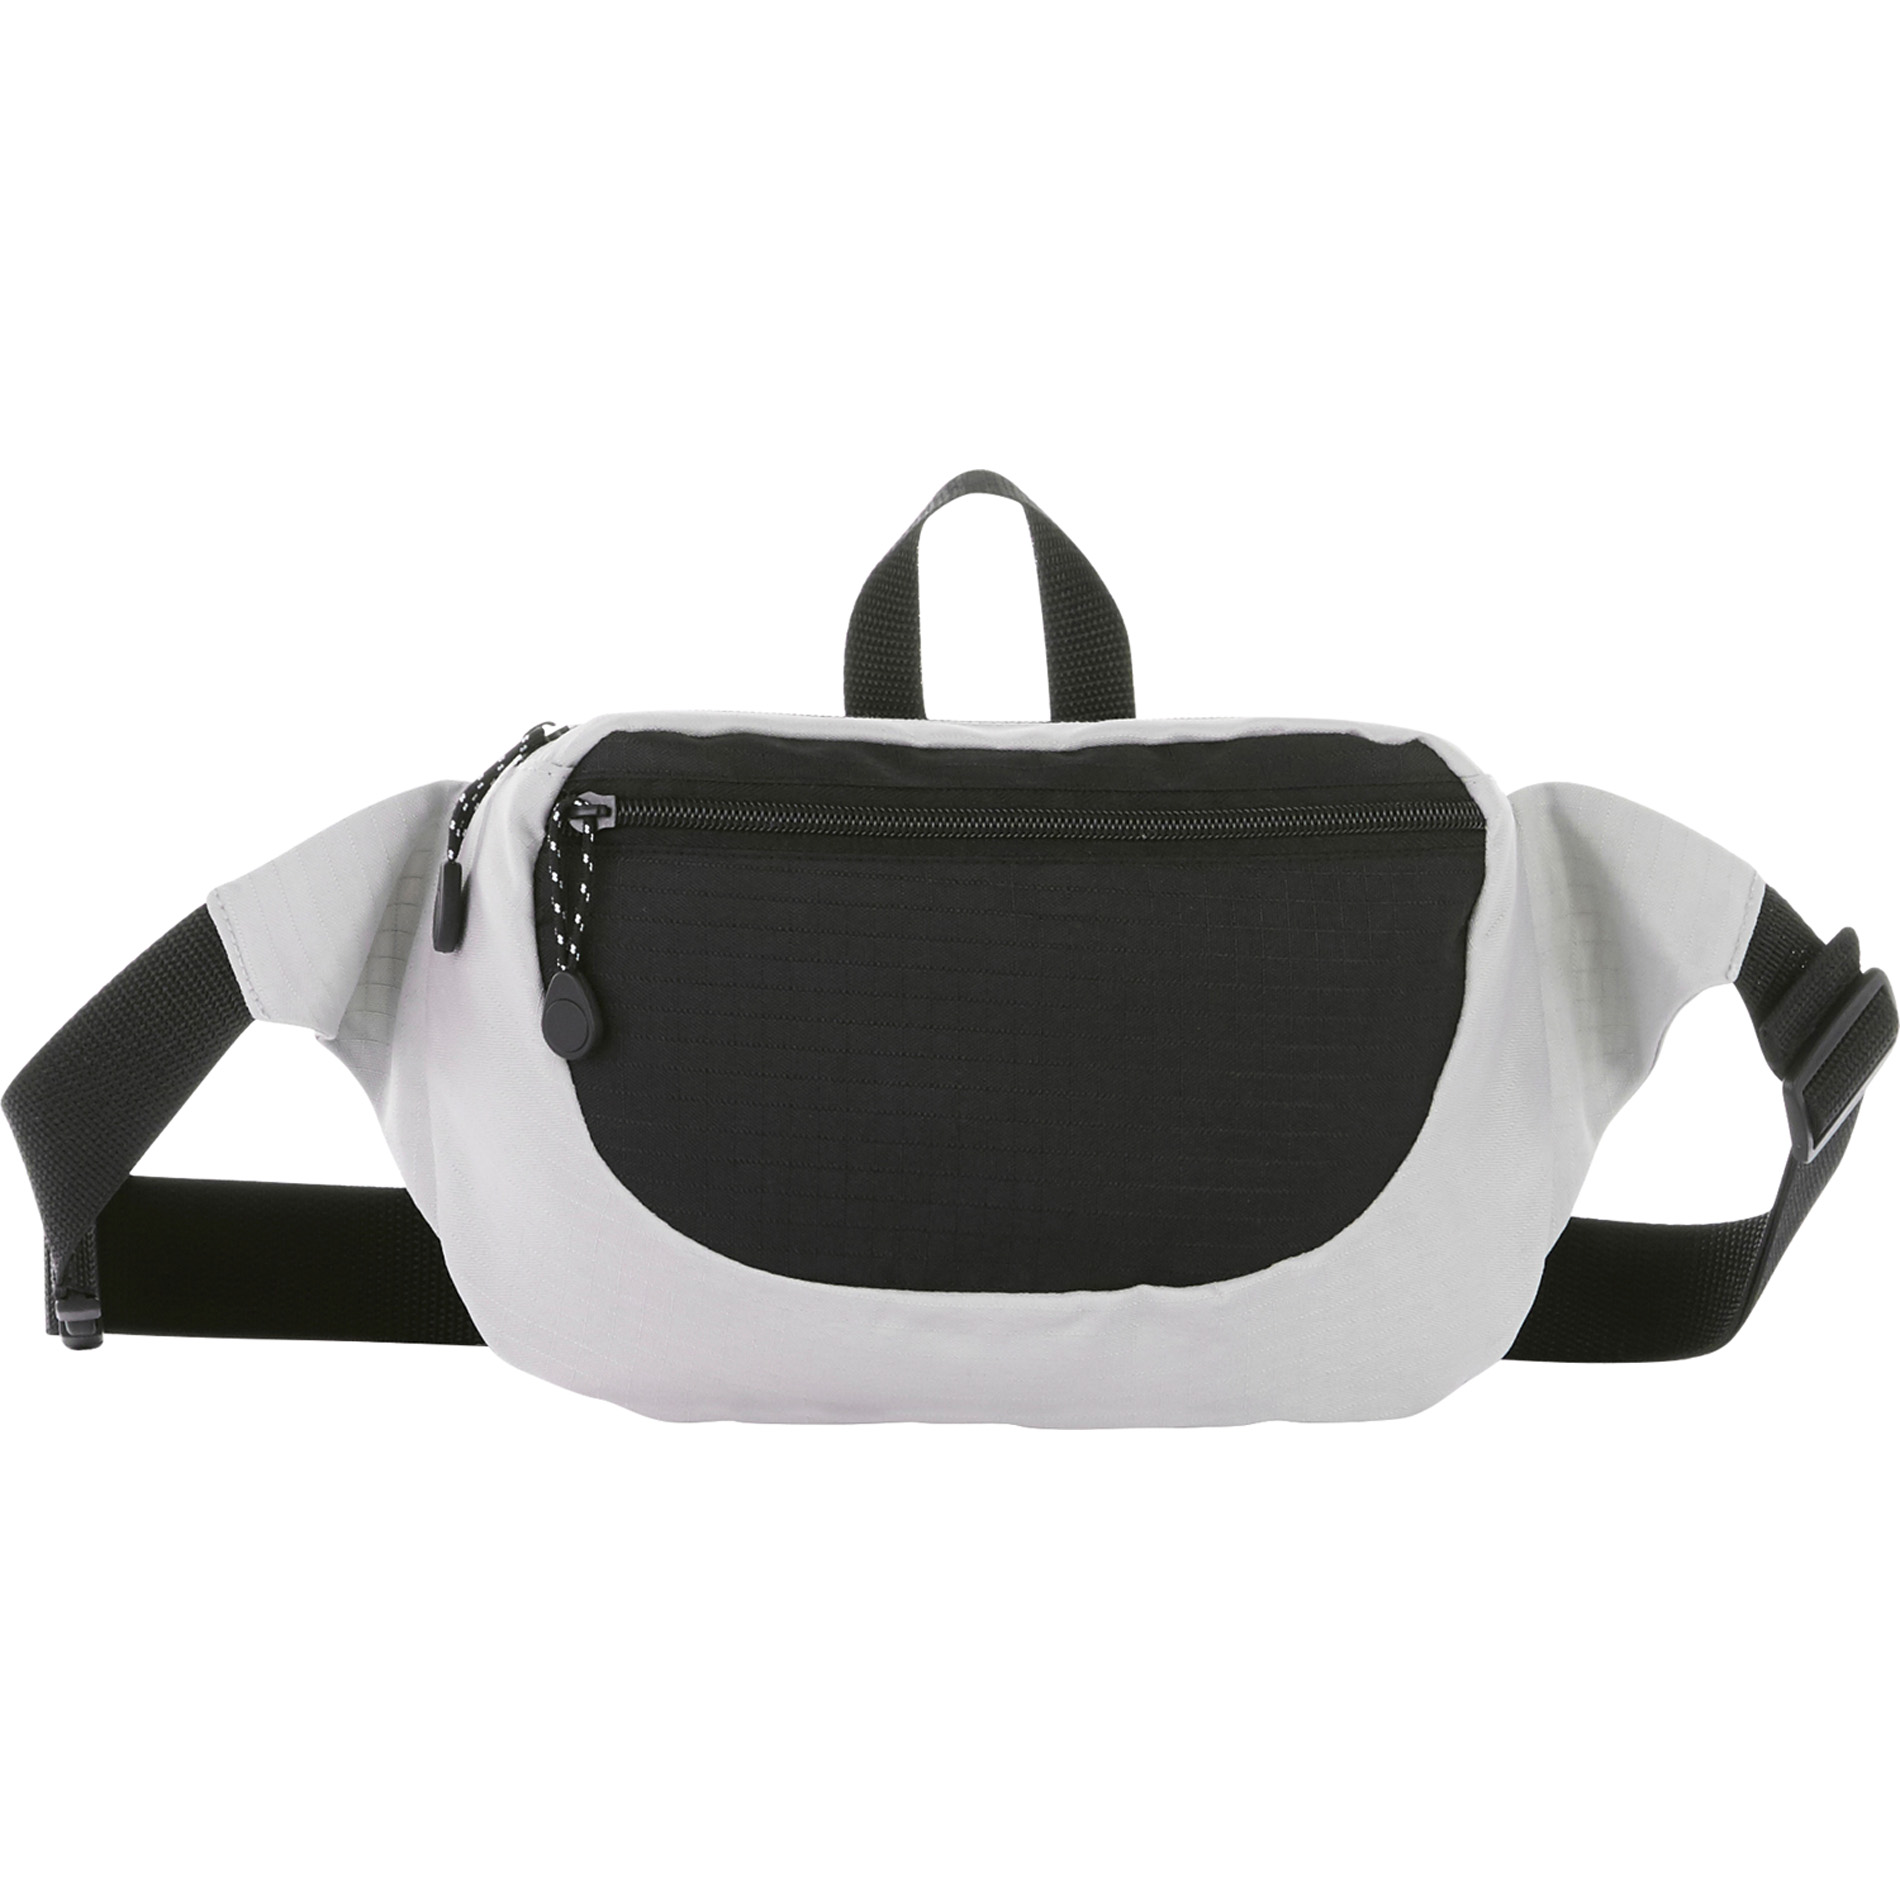 LEEDS 3450-75 - Excursion Fanny Pack